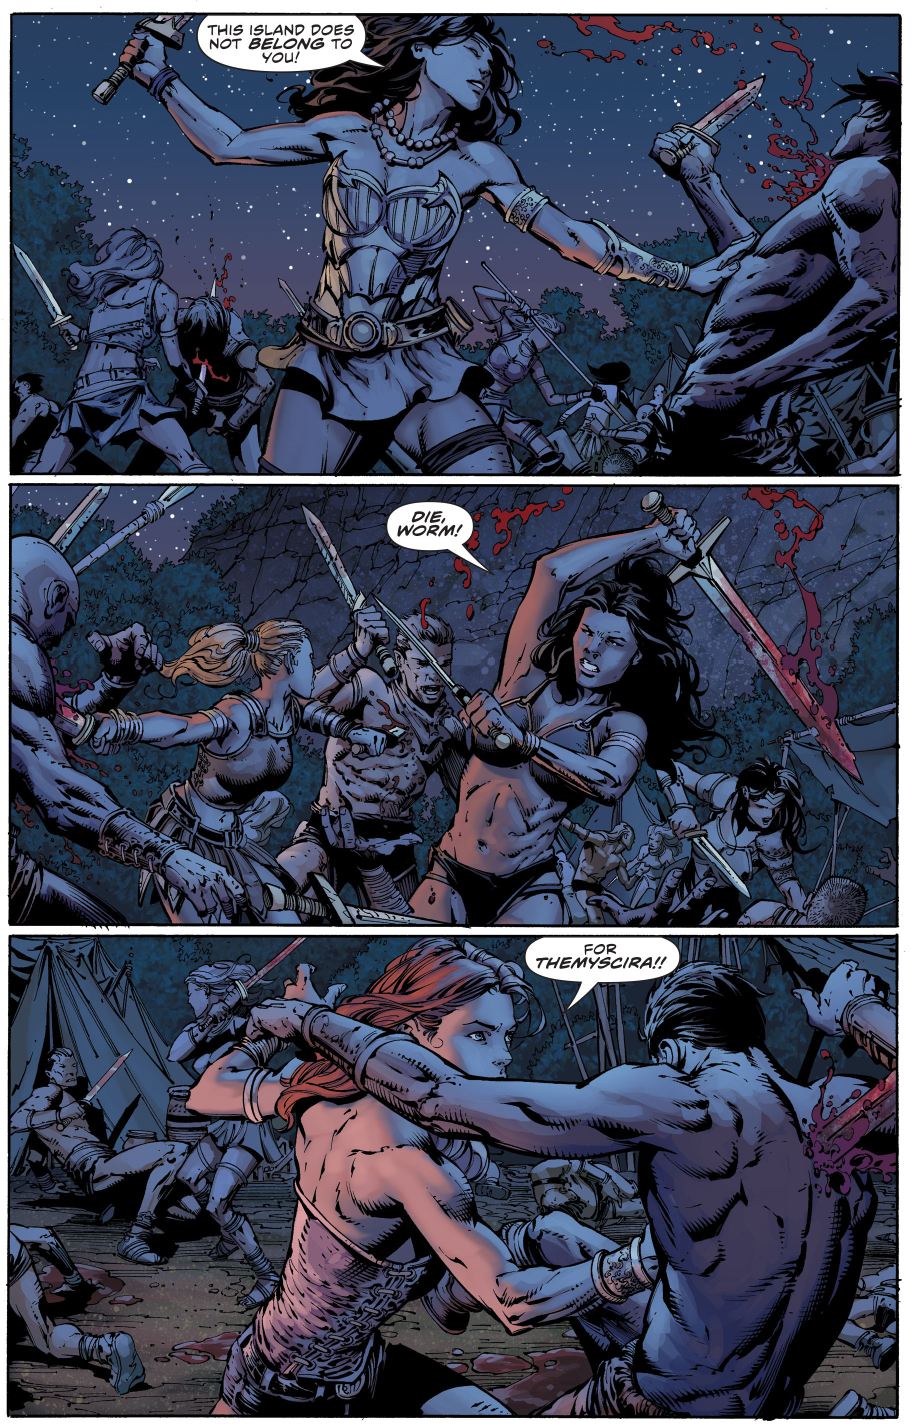 Donna Troy Massacres The Sons Of Themyscira Comicnewbies